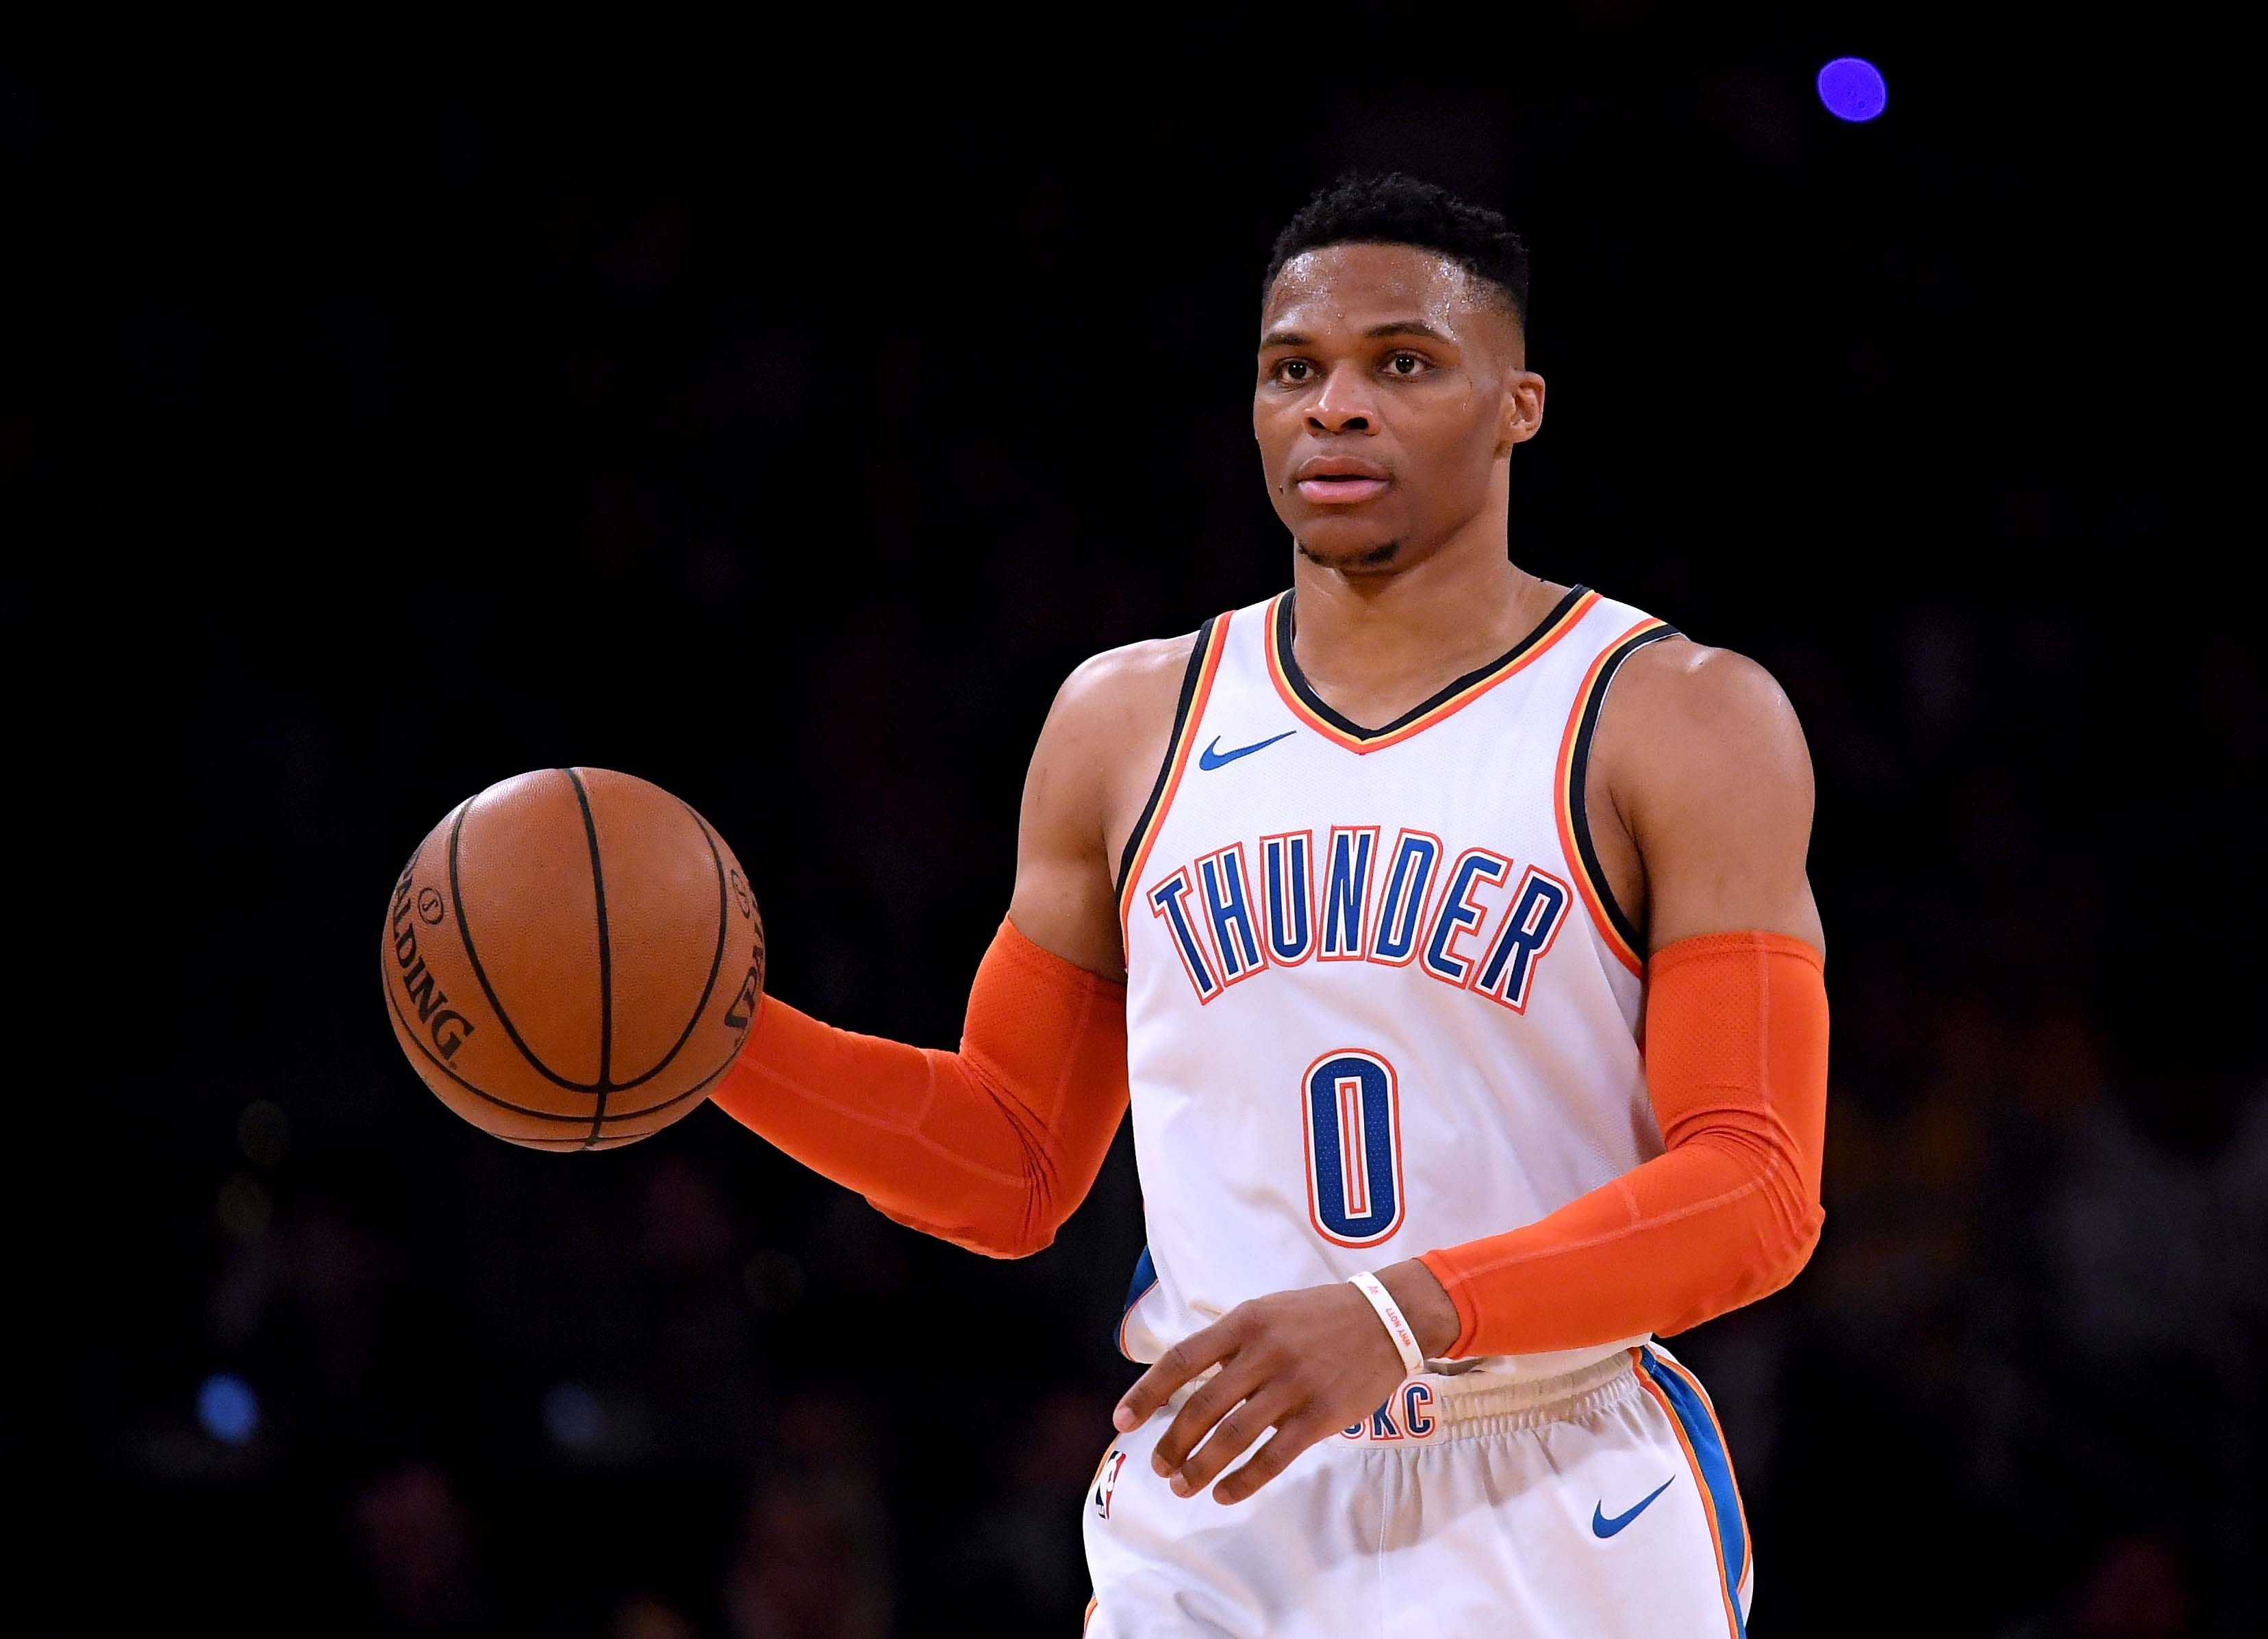 Russell Westbrook #0 of the Oklahoma City Thunder during a 107-100 win over the Los Angeles Lakers at Staples Center on January 02, 2019. | Source: Getty Images